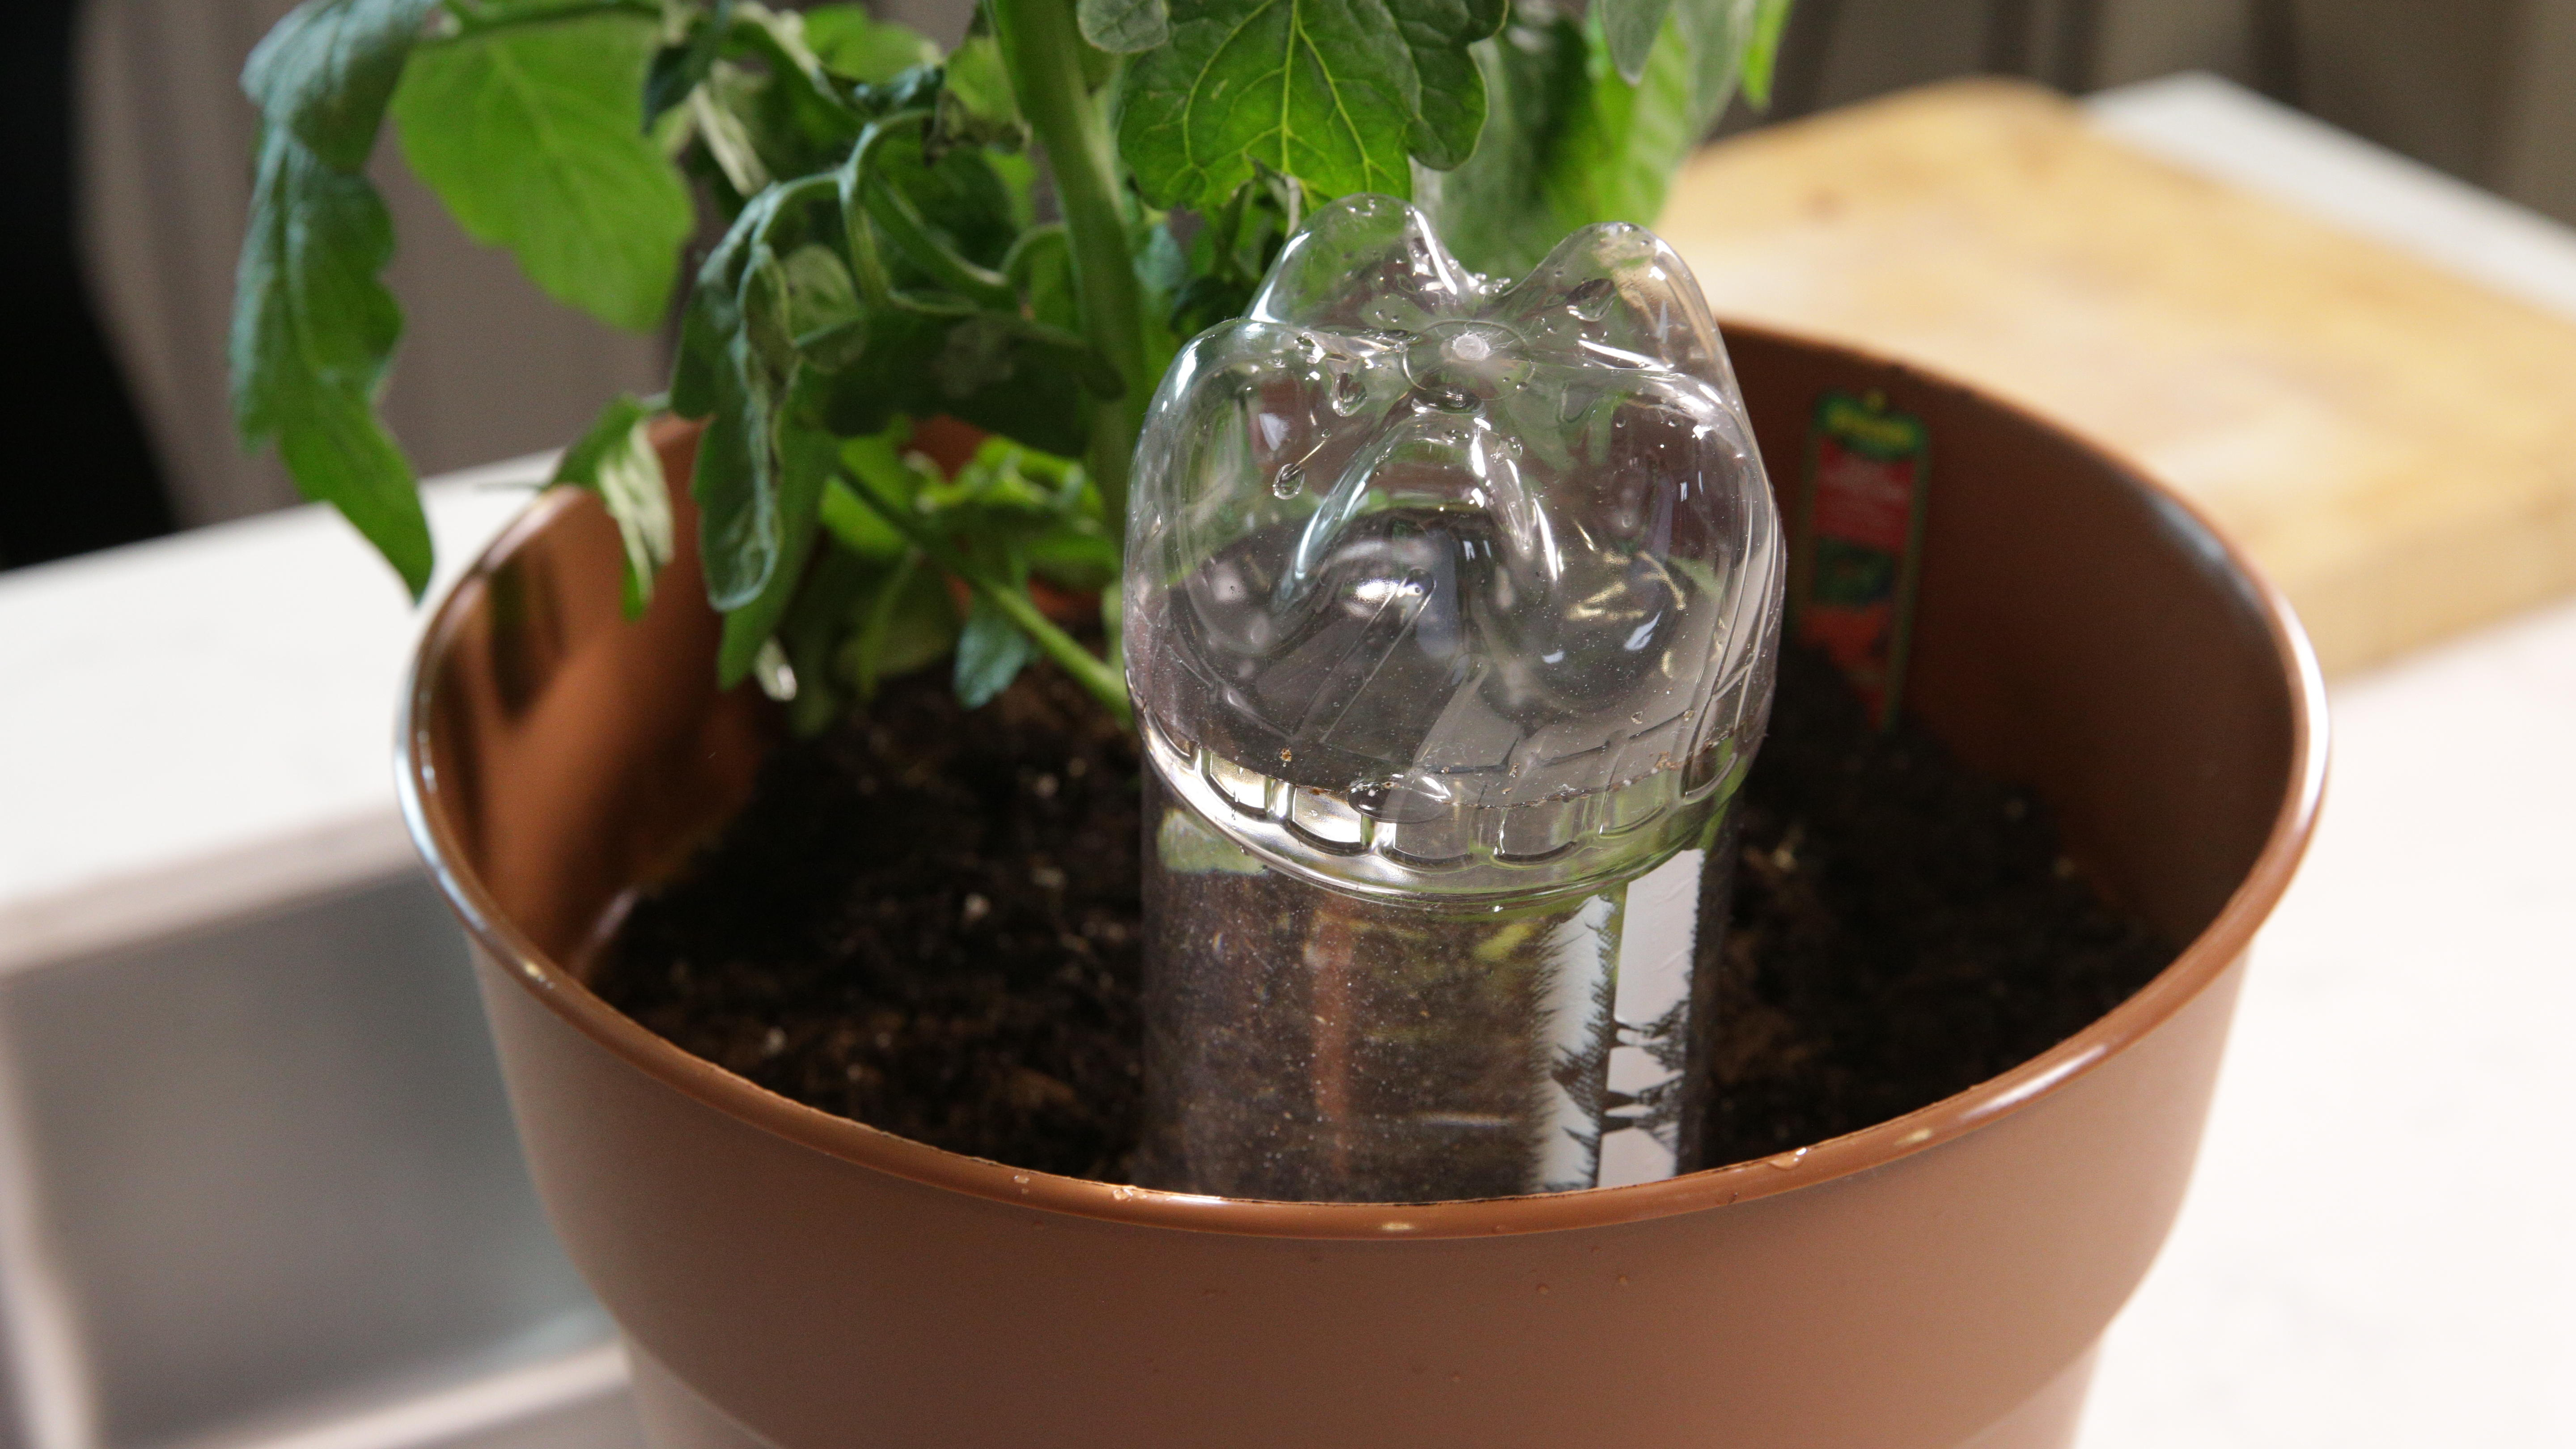 Water Your Plants While You Re Away, How To Care For Houseplants While On Vacation